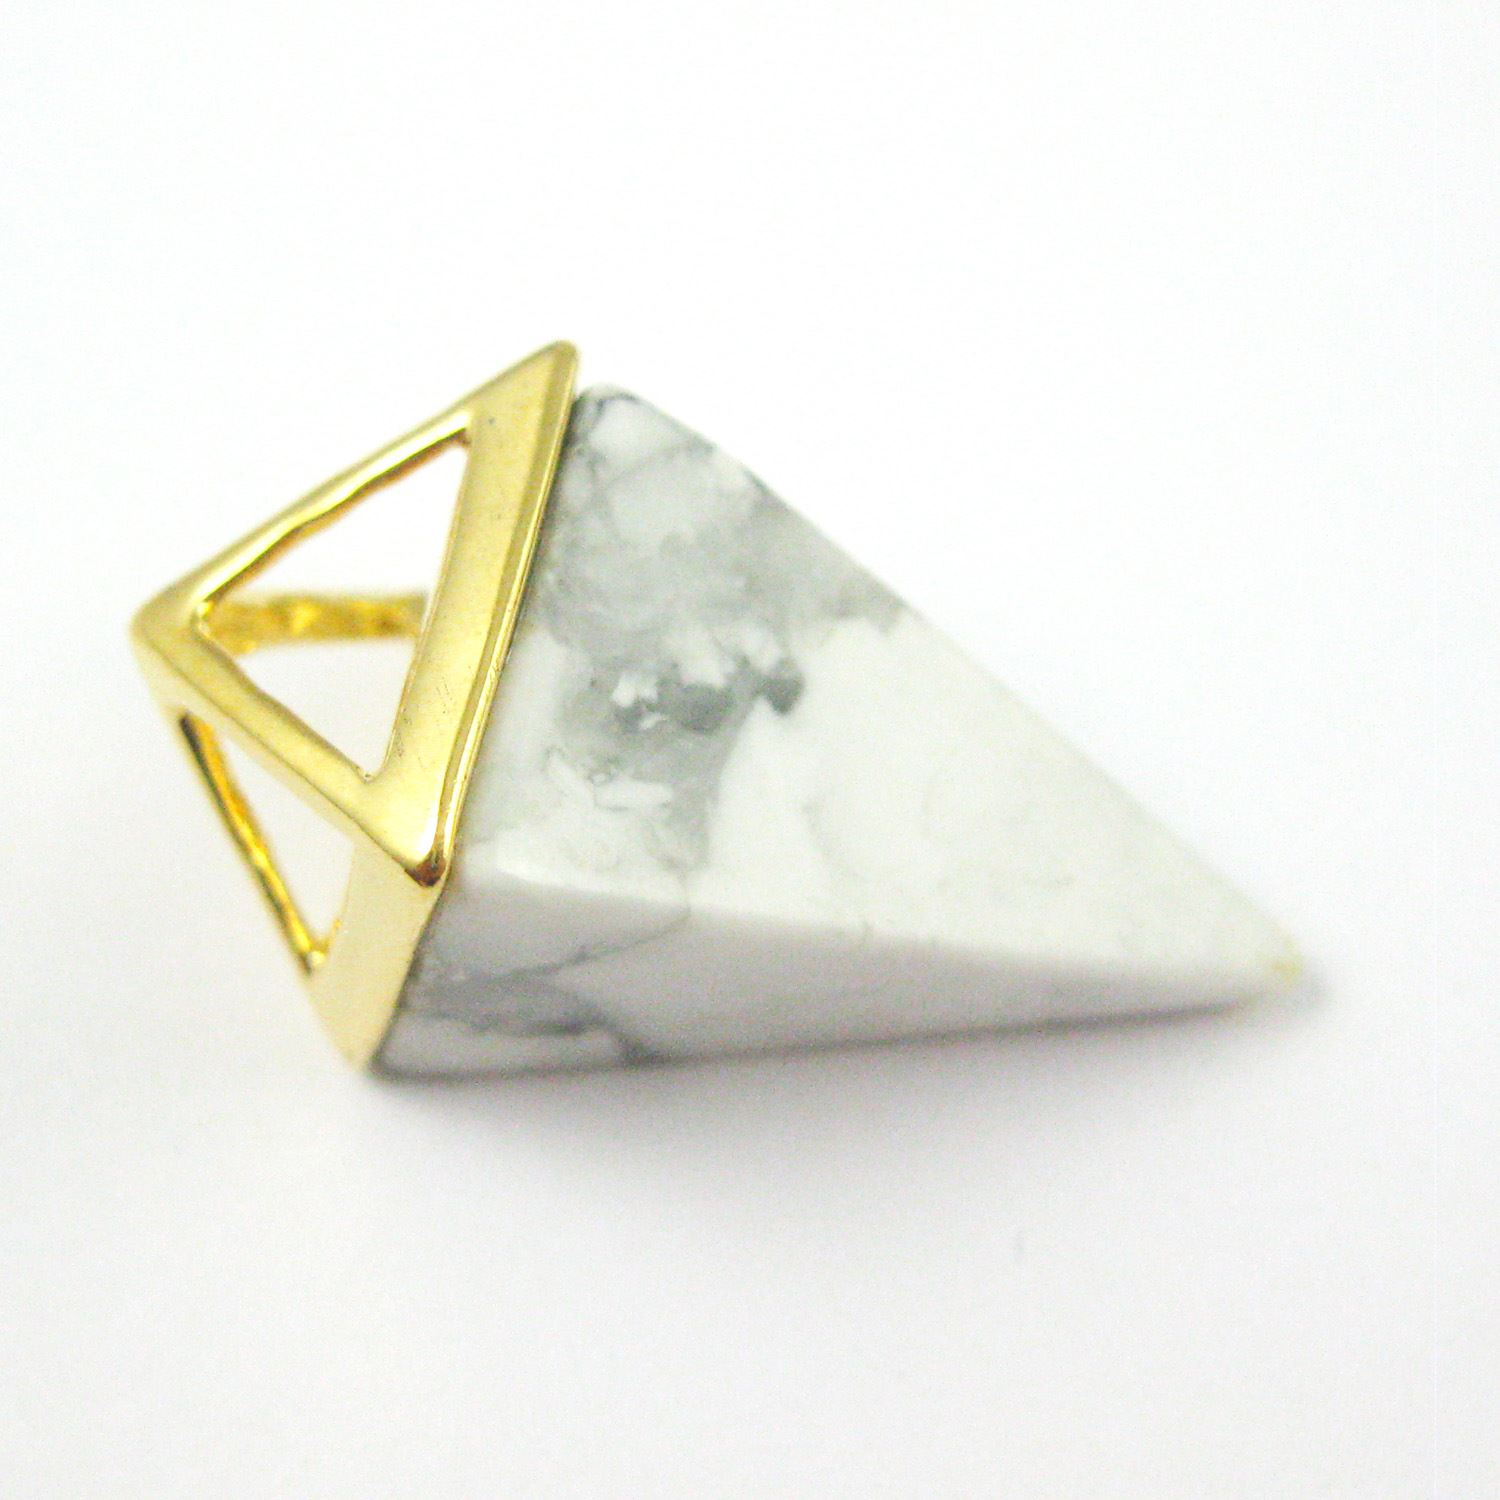 Natural Gemstone Pyramid Pendant- Point Spike Pendant, Double Pyramid Gem - White Howlite - 34mm